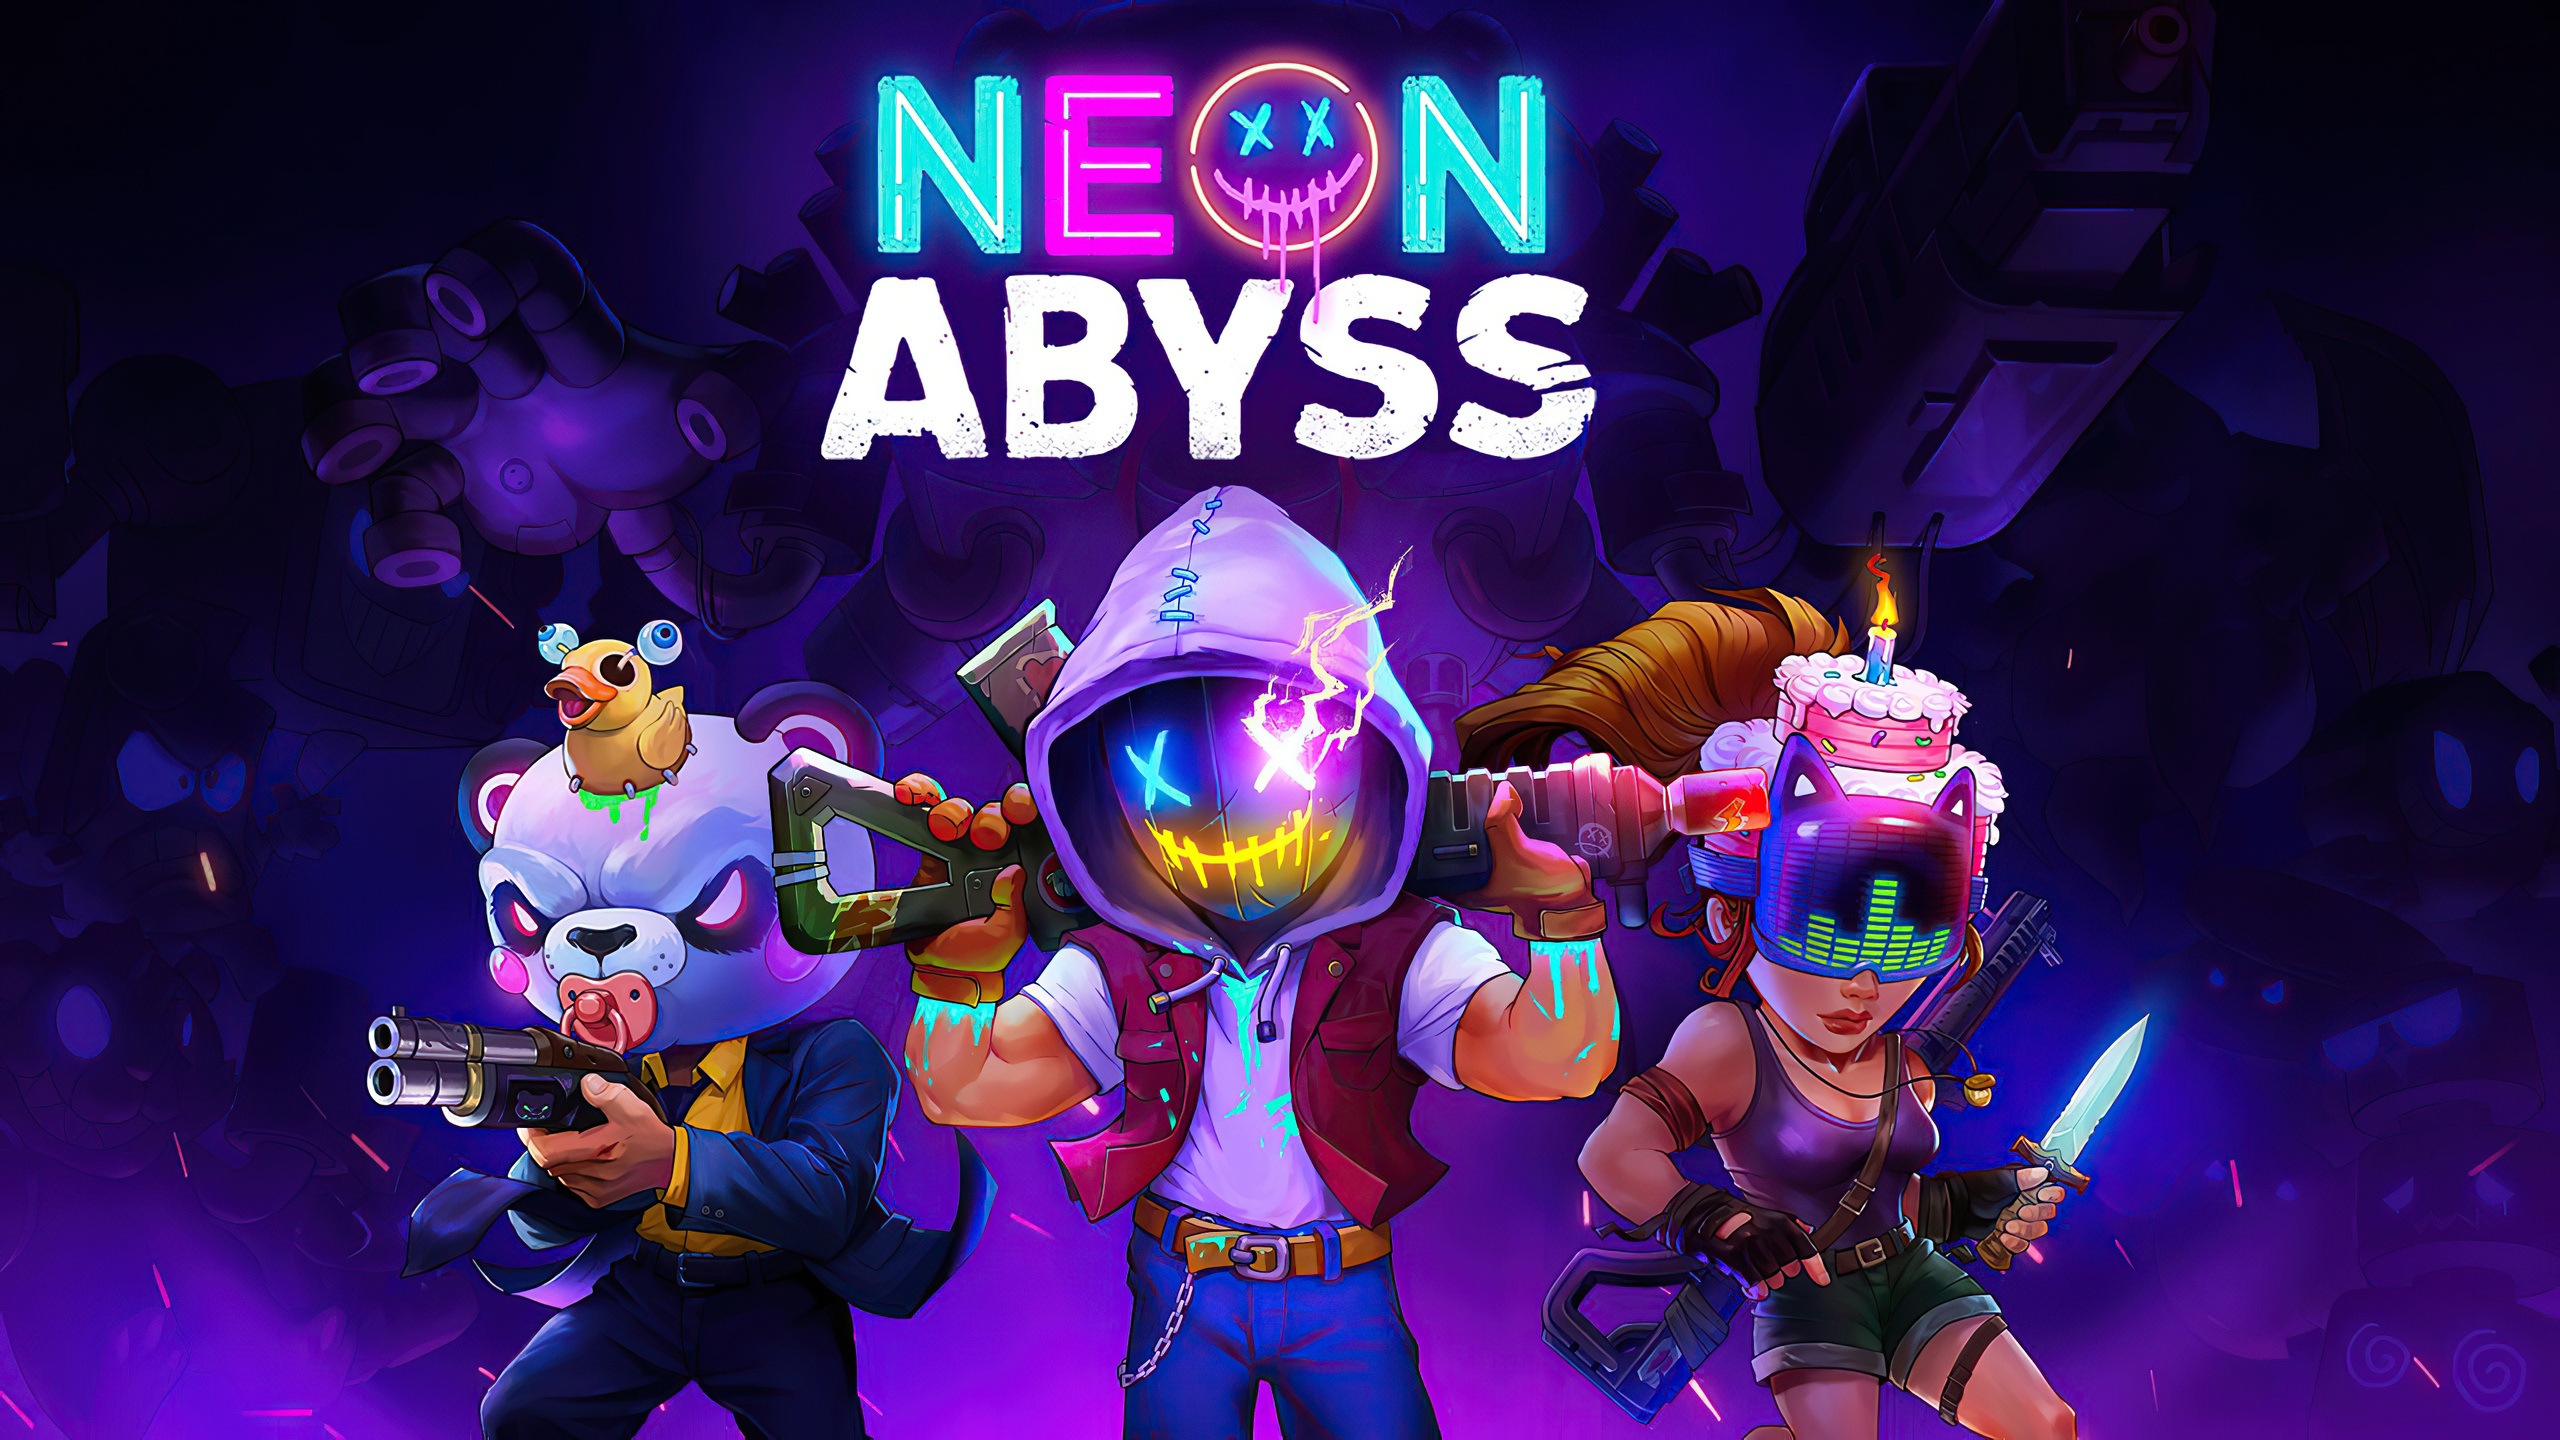 neon-abyss-game-2020-lg.jpg